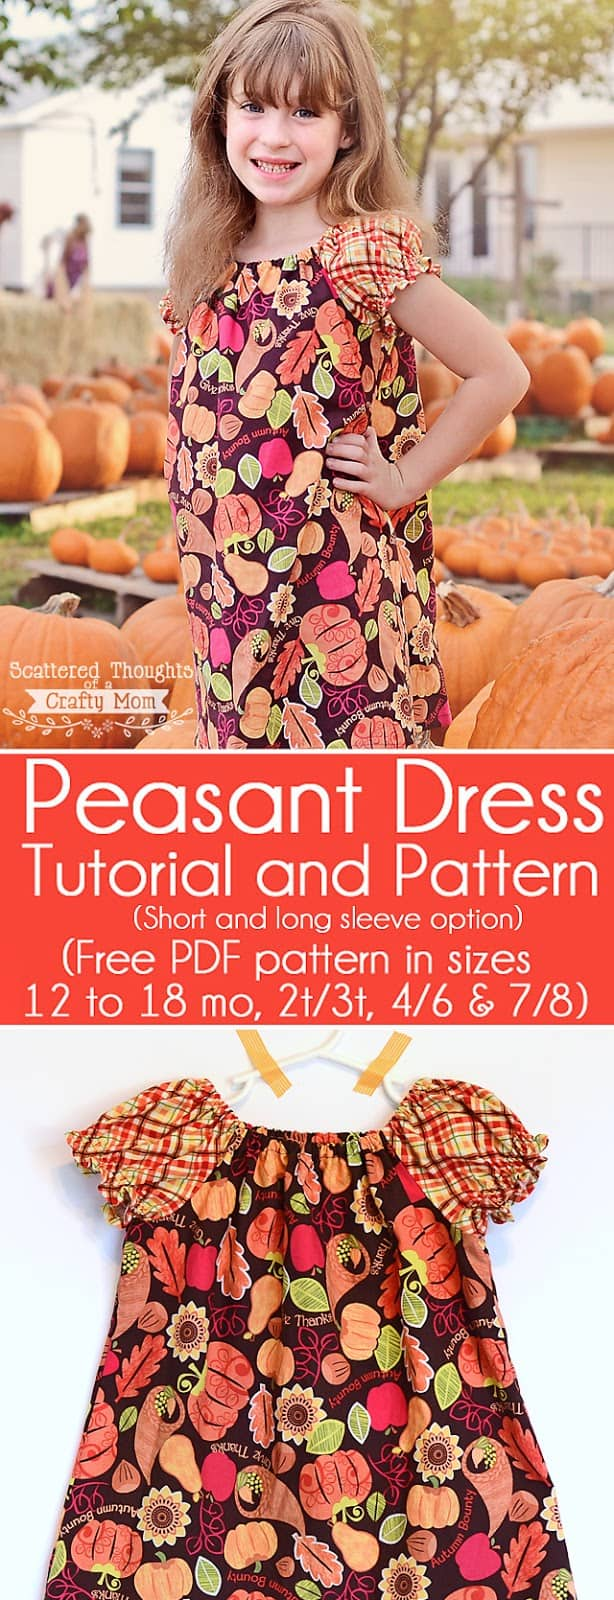 Lillian Weber's Basic Peasant Dress Pattern To Celebrate her 100th Birthday!, needy children, poor, ministry, pretty dresses, missional living, dedication, DIY, handmade, homemade, tutorial, toddler, 2T, 3T, 4T, sizes, infant, make your own pattern, MYO, crafty, crafts, create, thread a needle, short sleeves, modest, ties at shoulders, Rachel O'neill, children, orphanages, orphans, AIDS, beginner, sewing machine, Christian, printable, downloads, simple, easy, donate, sewing pattern, charity, Rachel O'Neill, stop abduction, stop abuse, 100th birthday, celebration, Little Dresses For Africa, sit in front of the TV, depression, selfishness, nonprofit 501c3, Christian, love, retirement, retiring, re-treading, centenarian, Lillian Weber, nursing home, aging, service, humanitarian, do unto others, Malawi, Africa, Brennan Manning, Abba's Child, book, quotes, shipping fund, role model, make a difference, sewing, pillowcase dress pattern, directions, Free, girls. youth